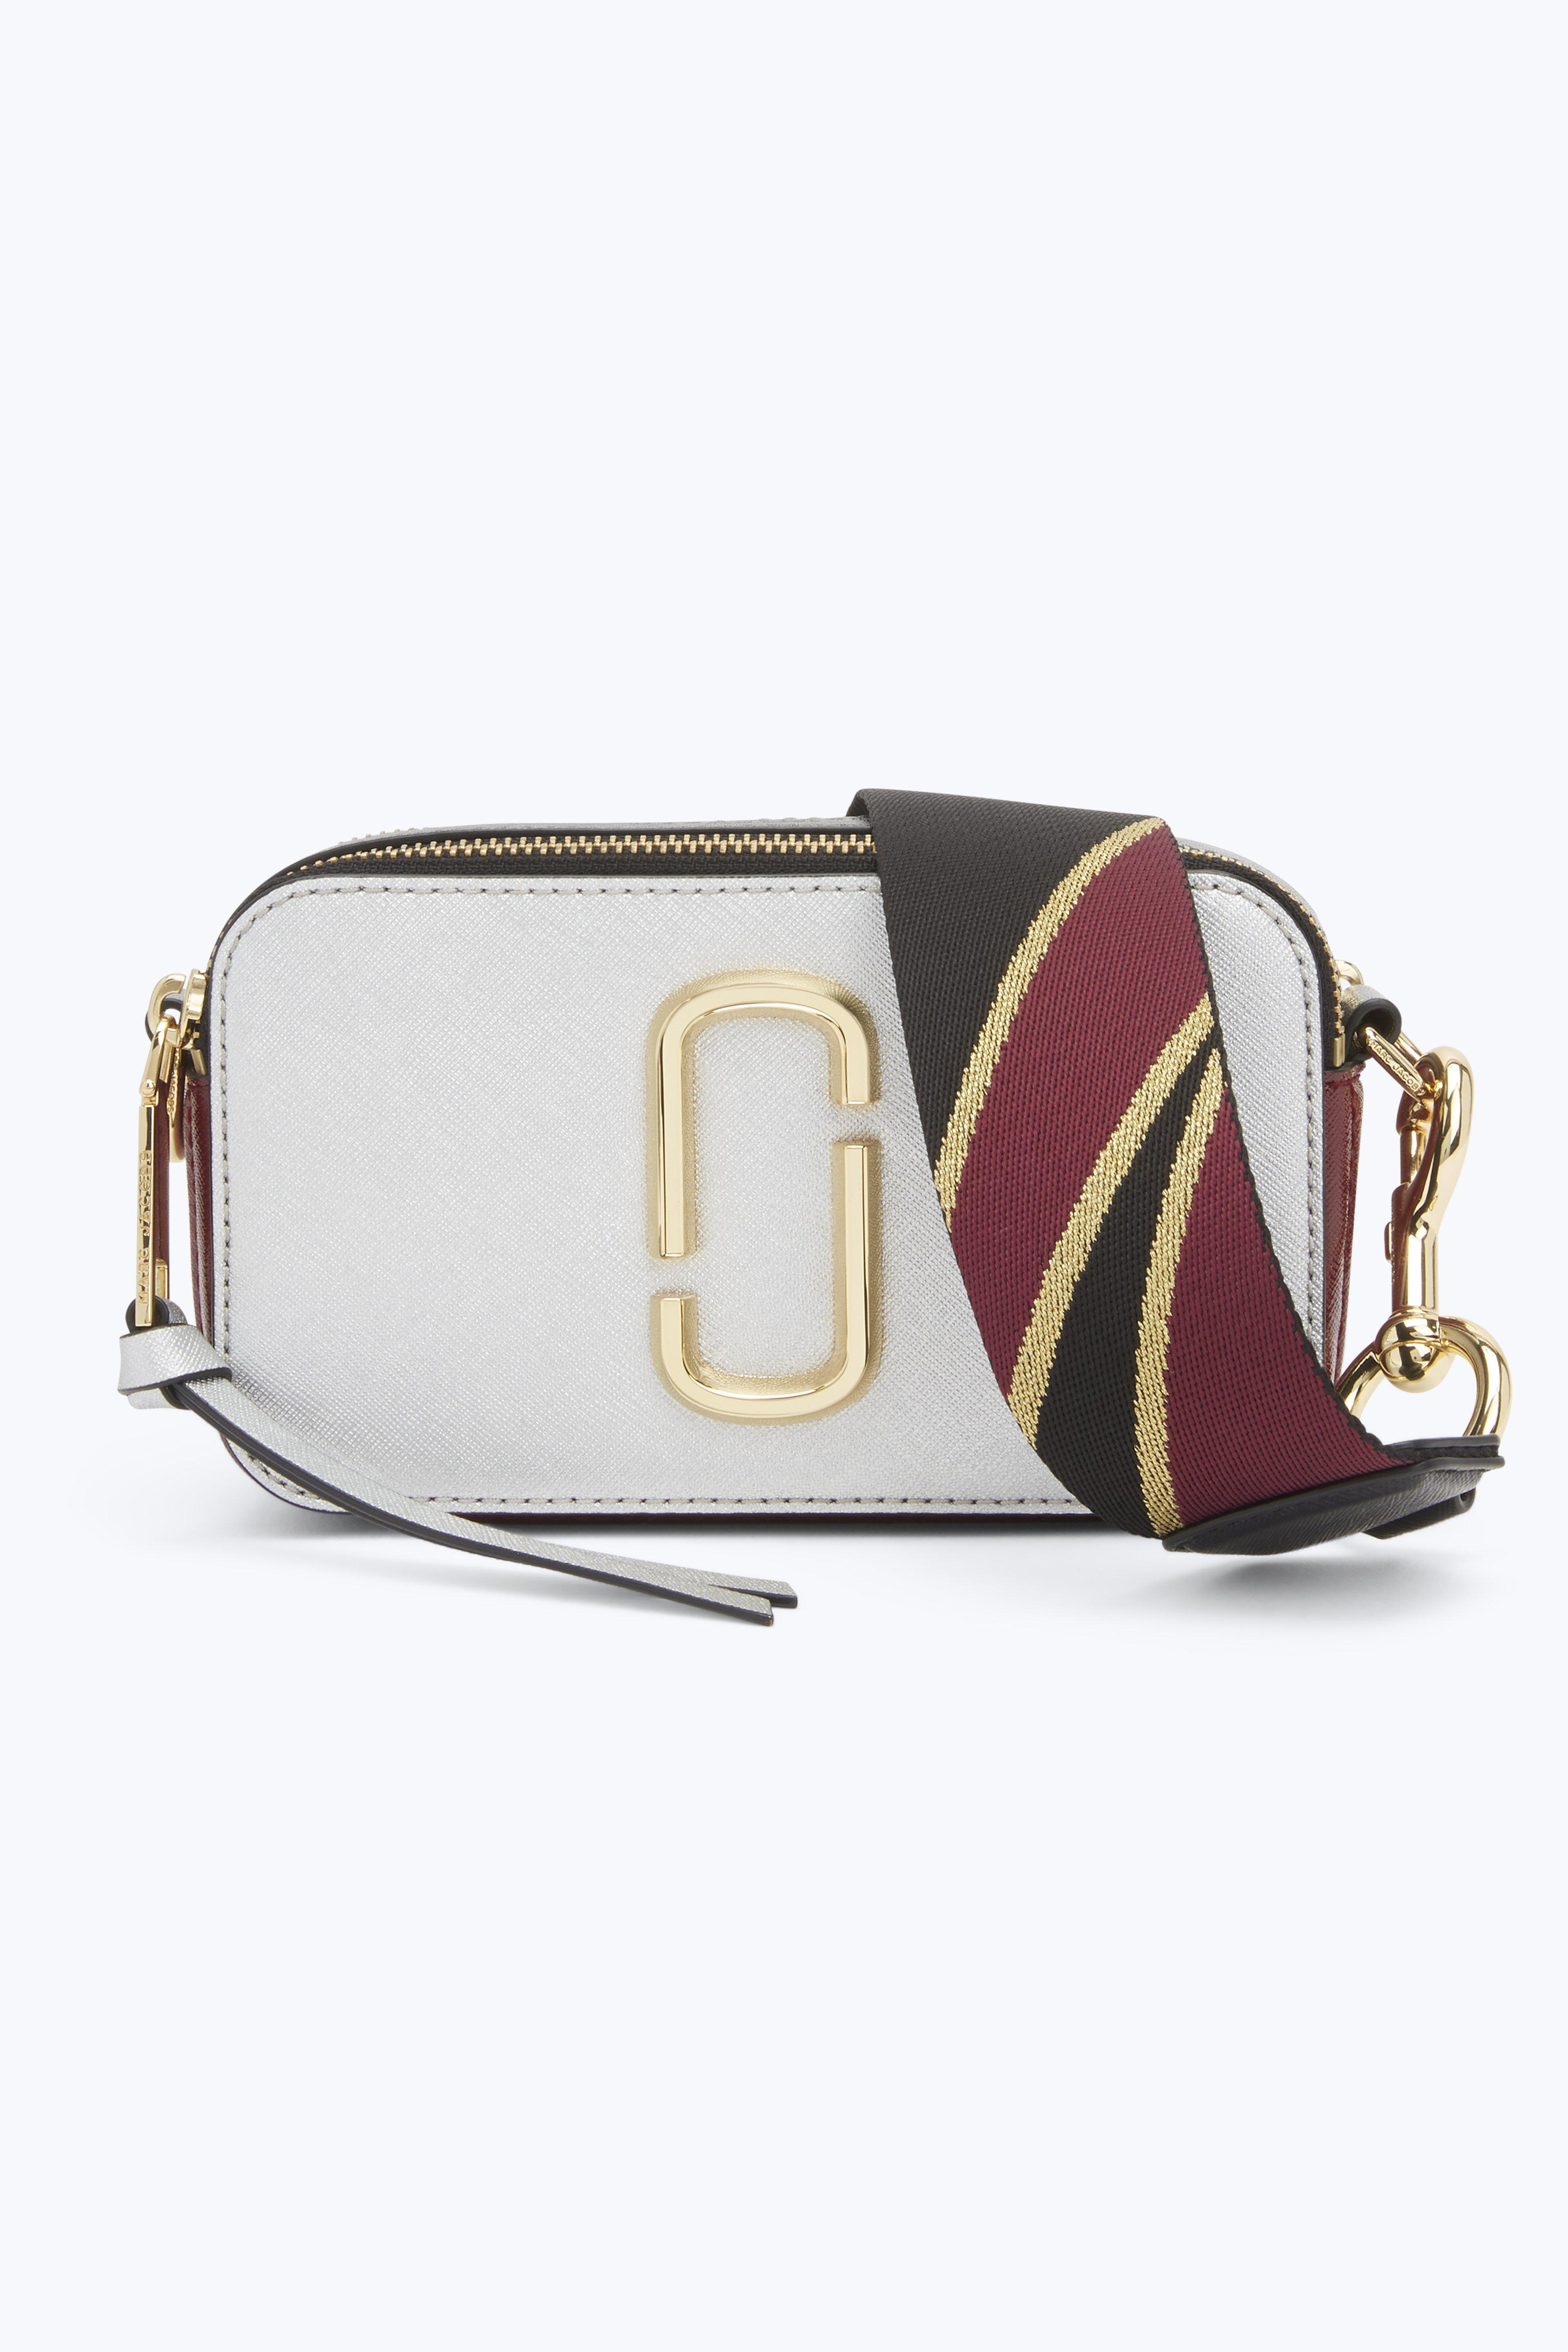 8ebea2f5a53d Marc Jacobs Snapshot Small Camera Bag In Silver Multi